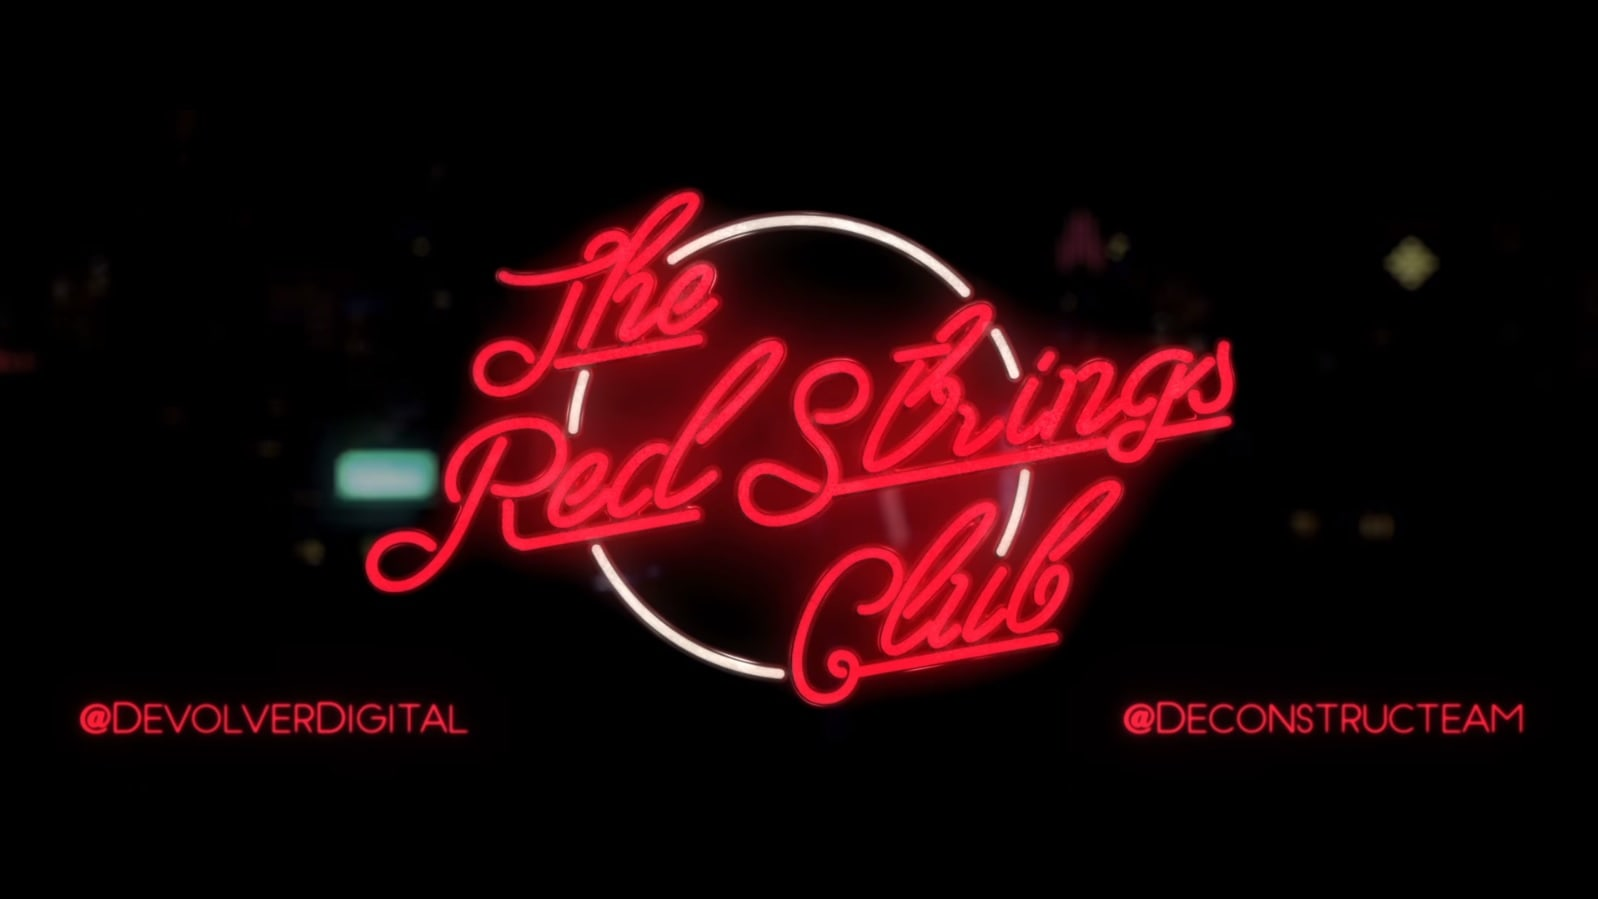 red strings club (RSC)